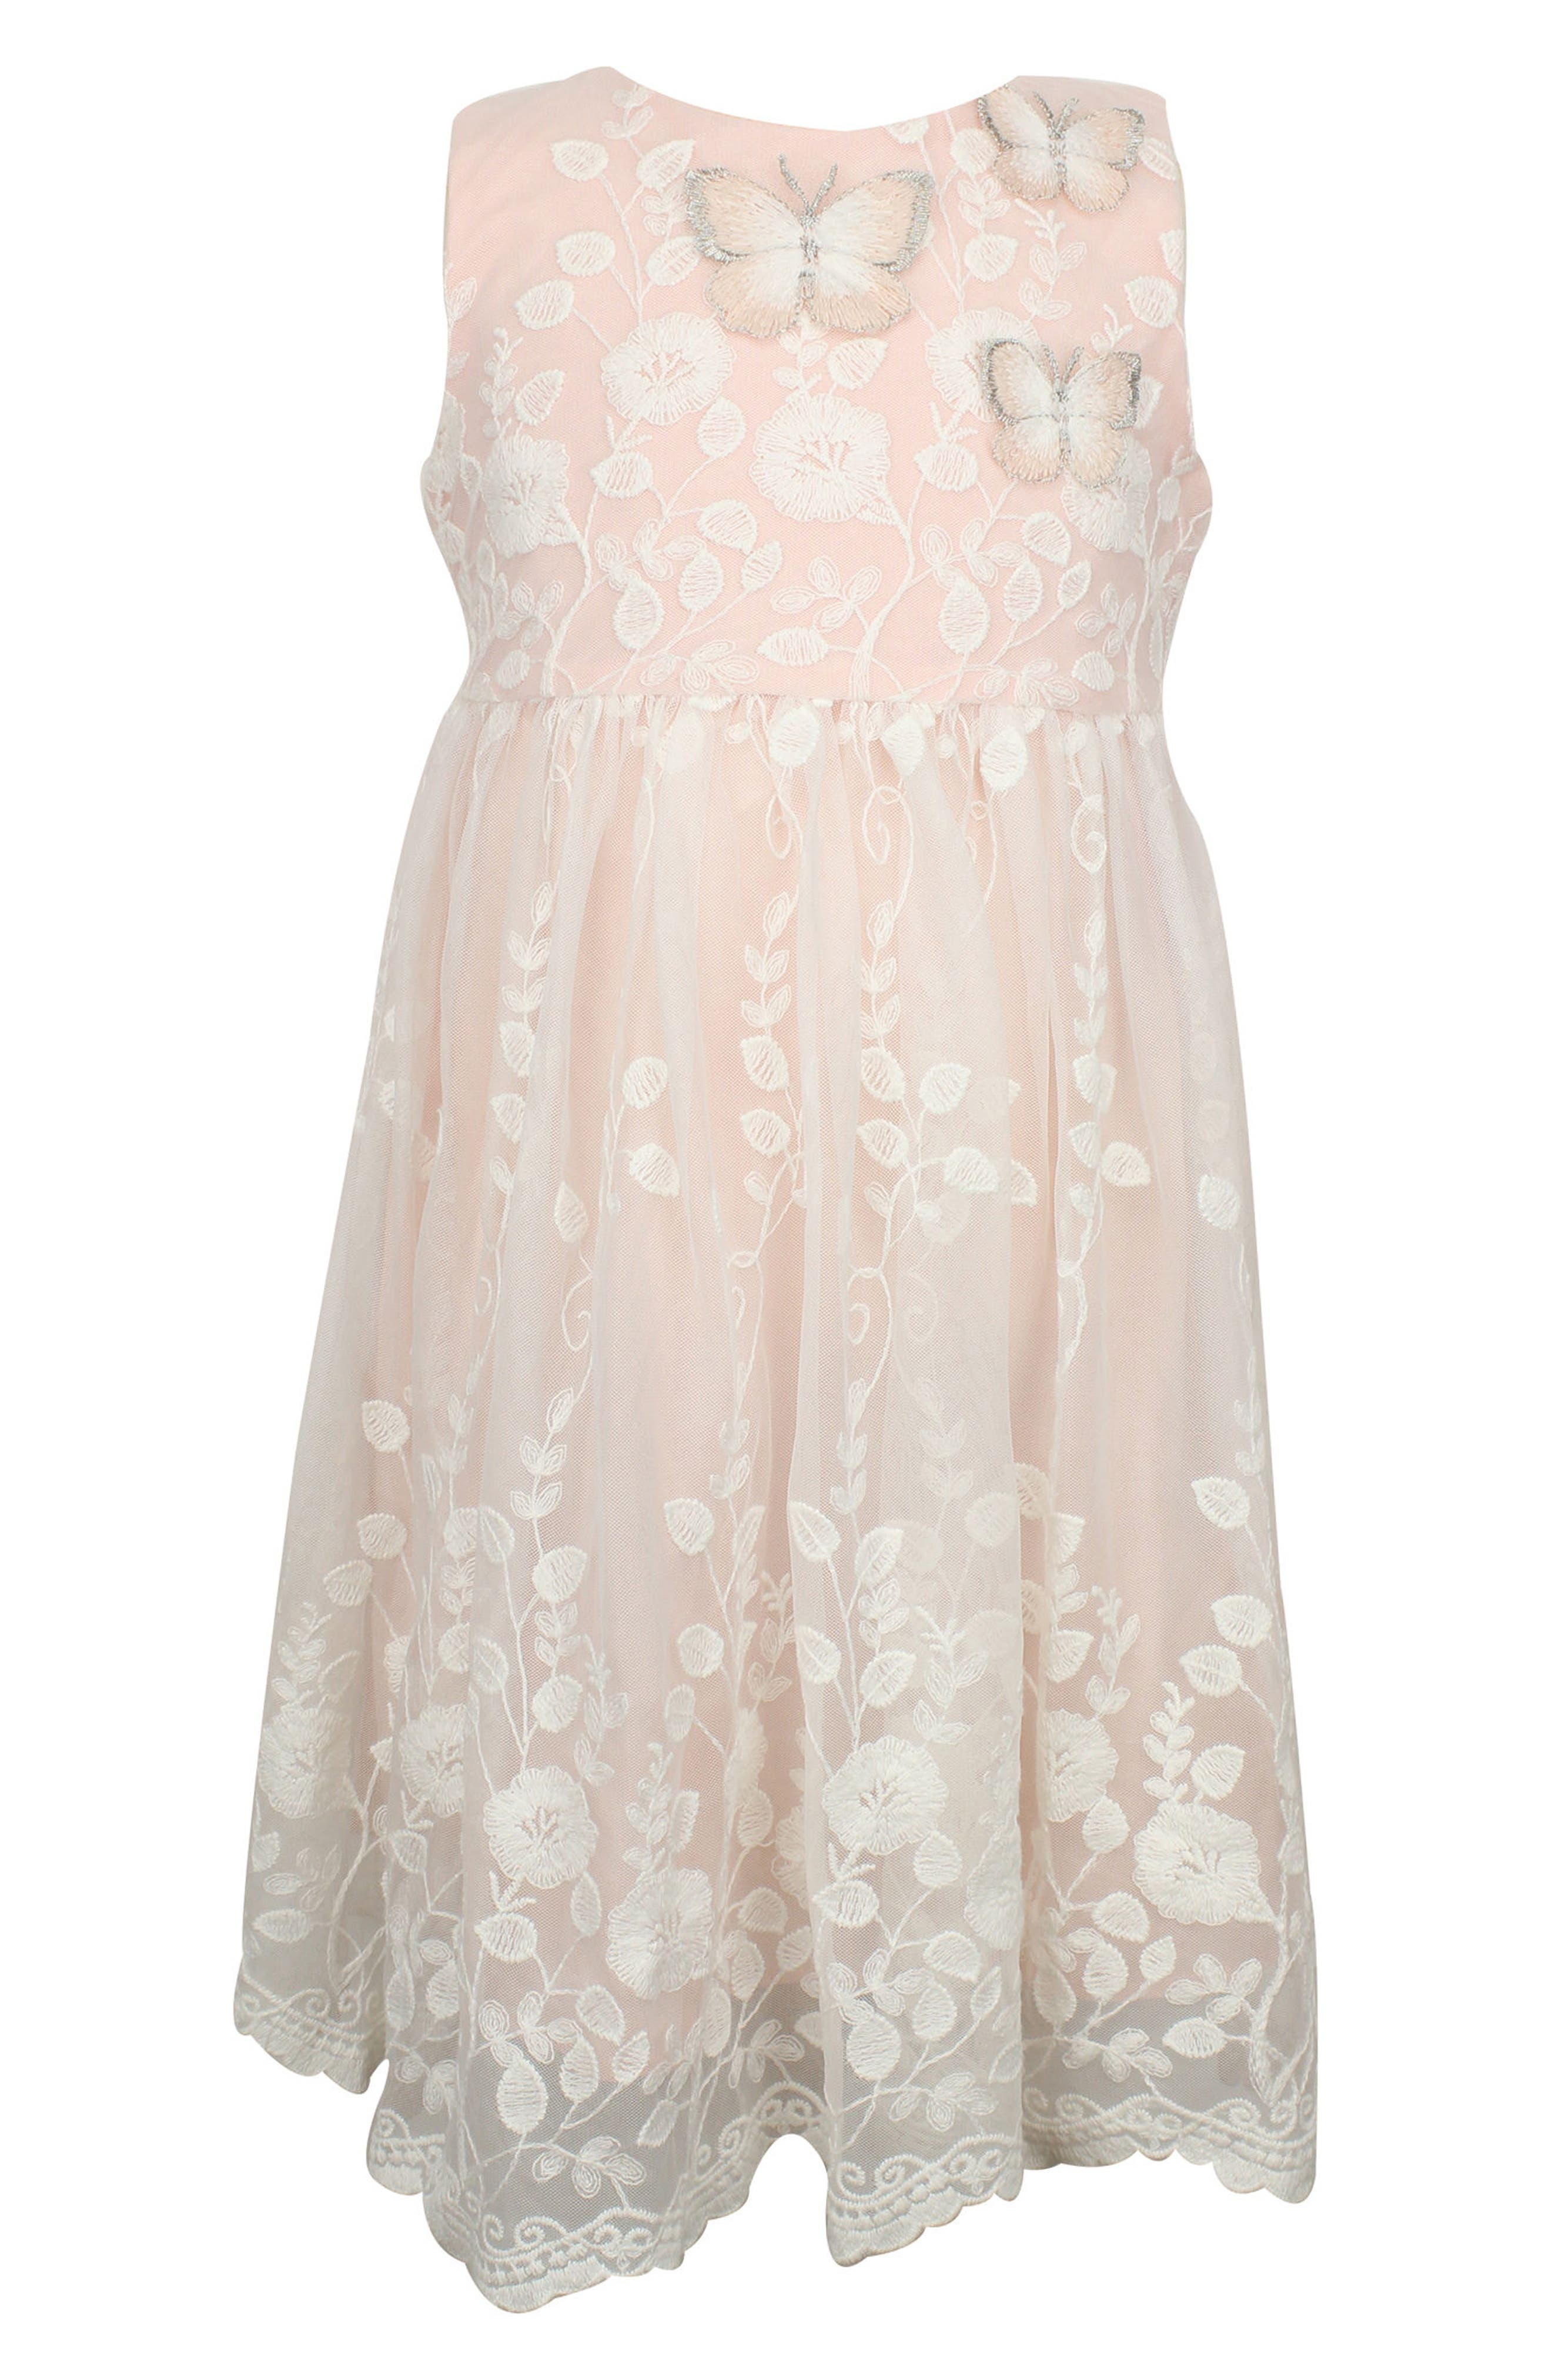 Main Image - Popatu Lace Overlay Sleeveless Dress (Baby Girls)